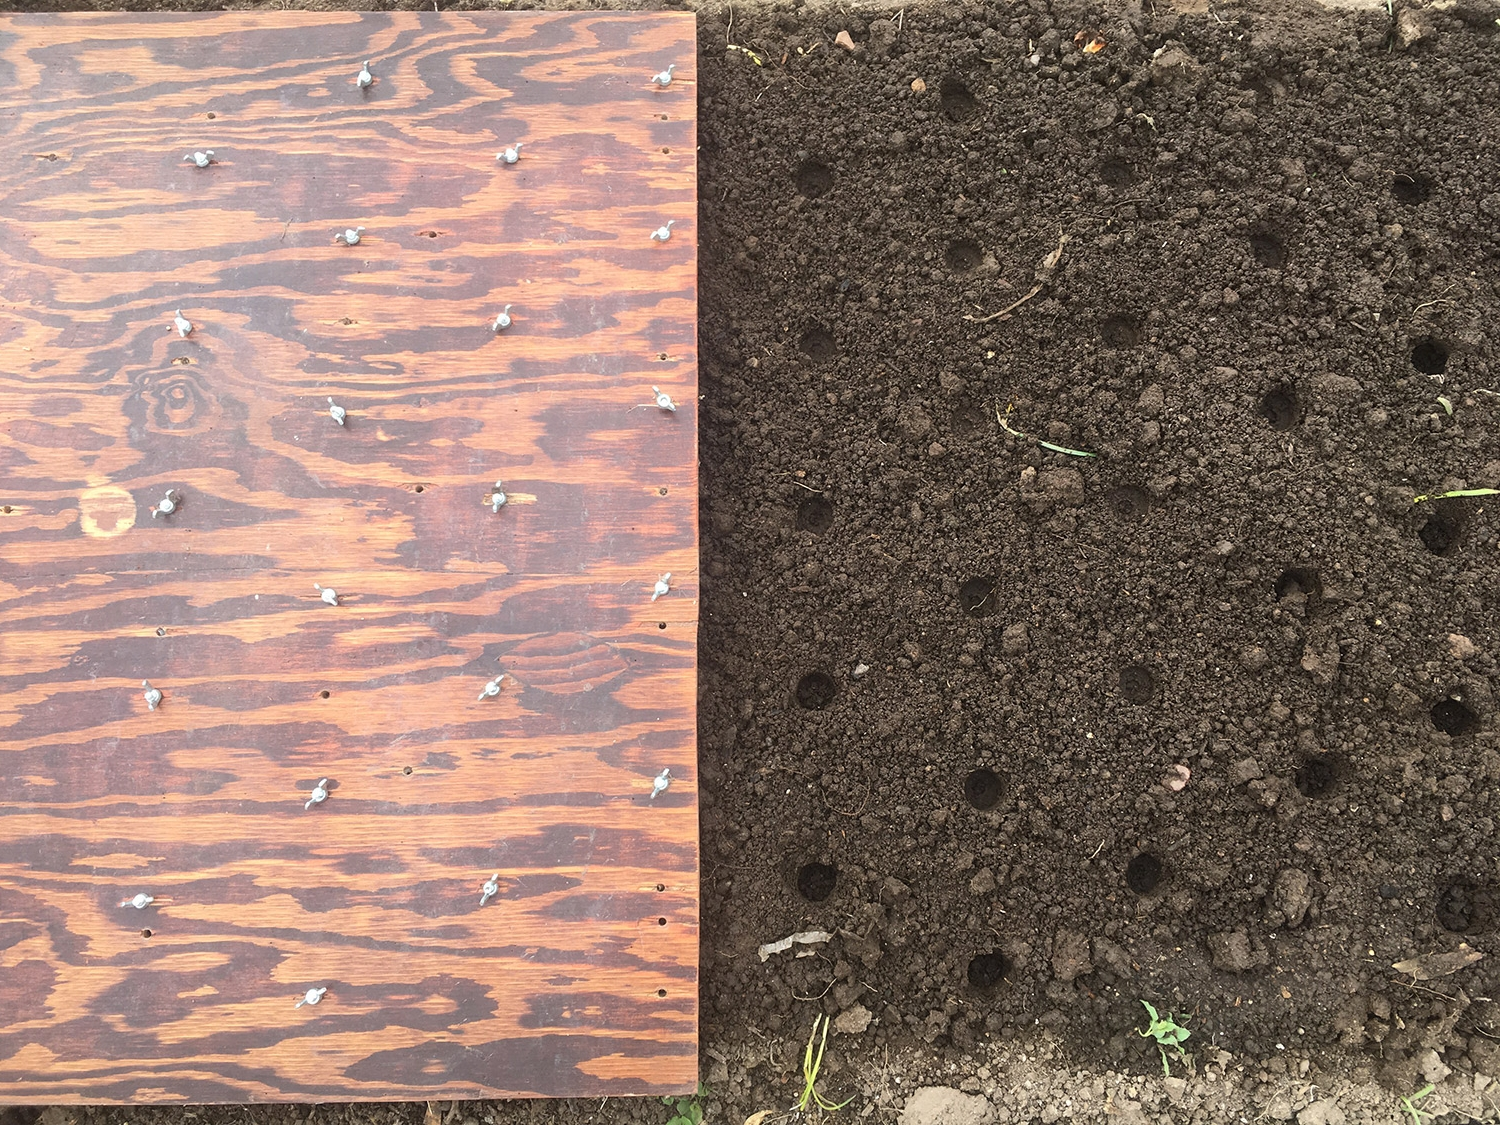 My 6x6 planting board, making those perfect holes. Trigonometry, yo! Also, weeds.